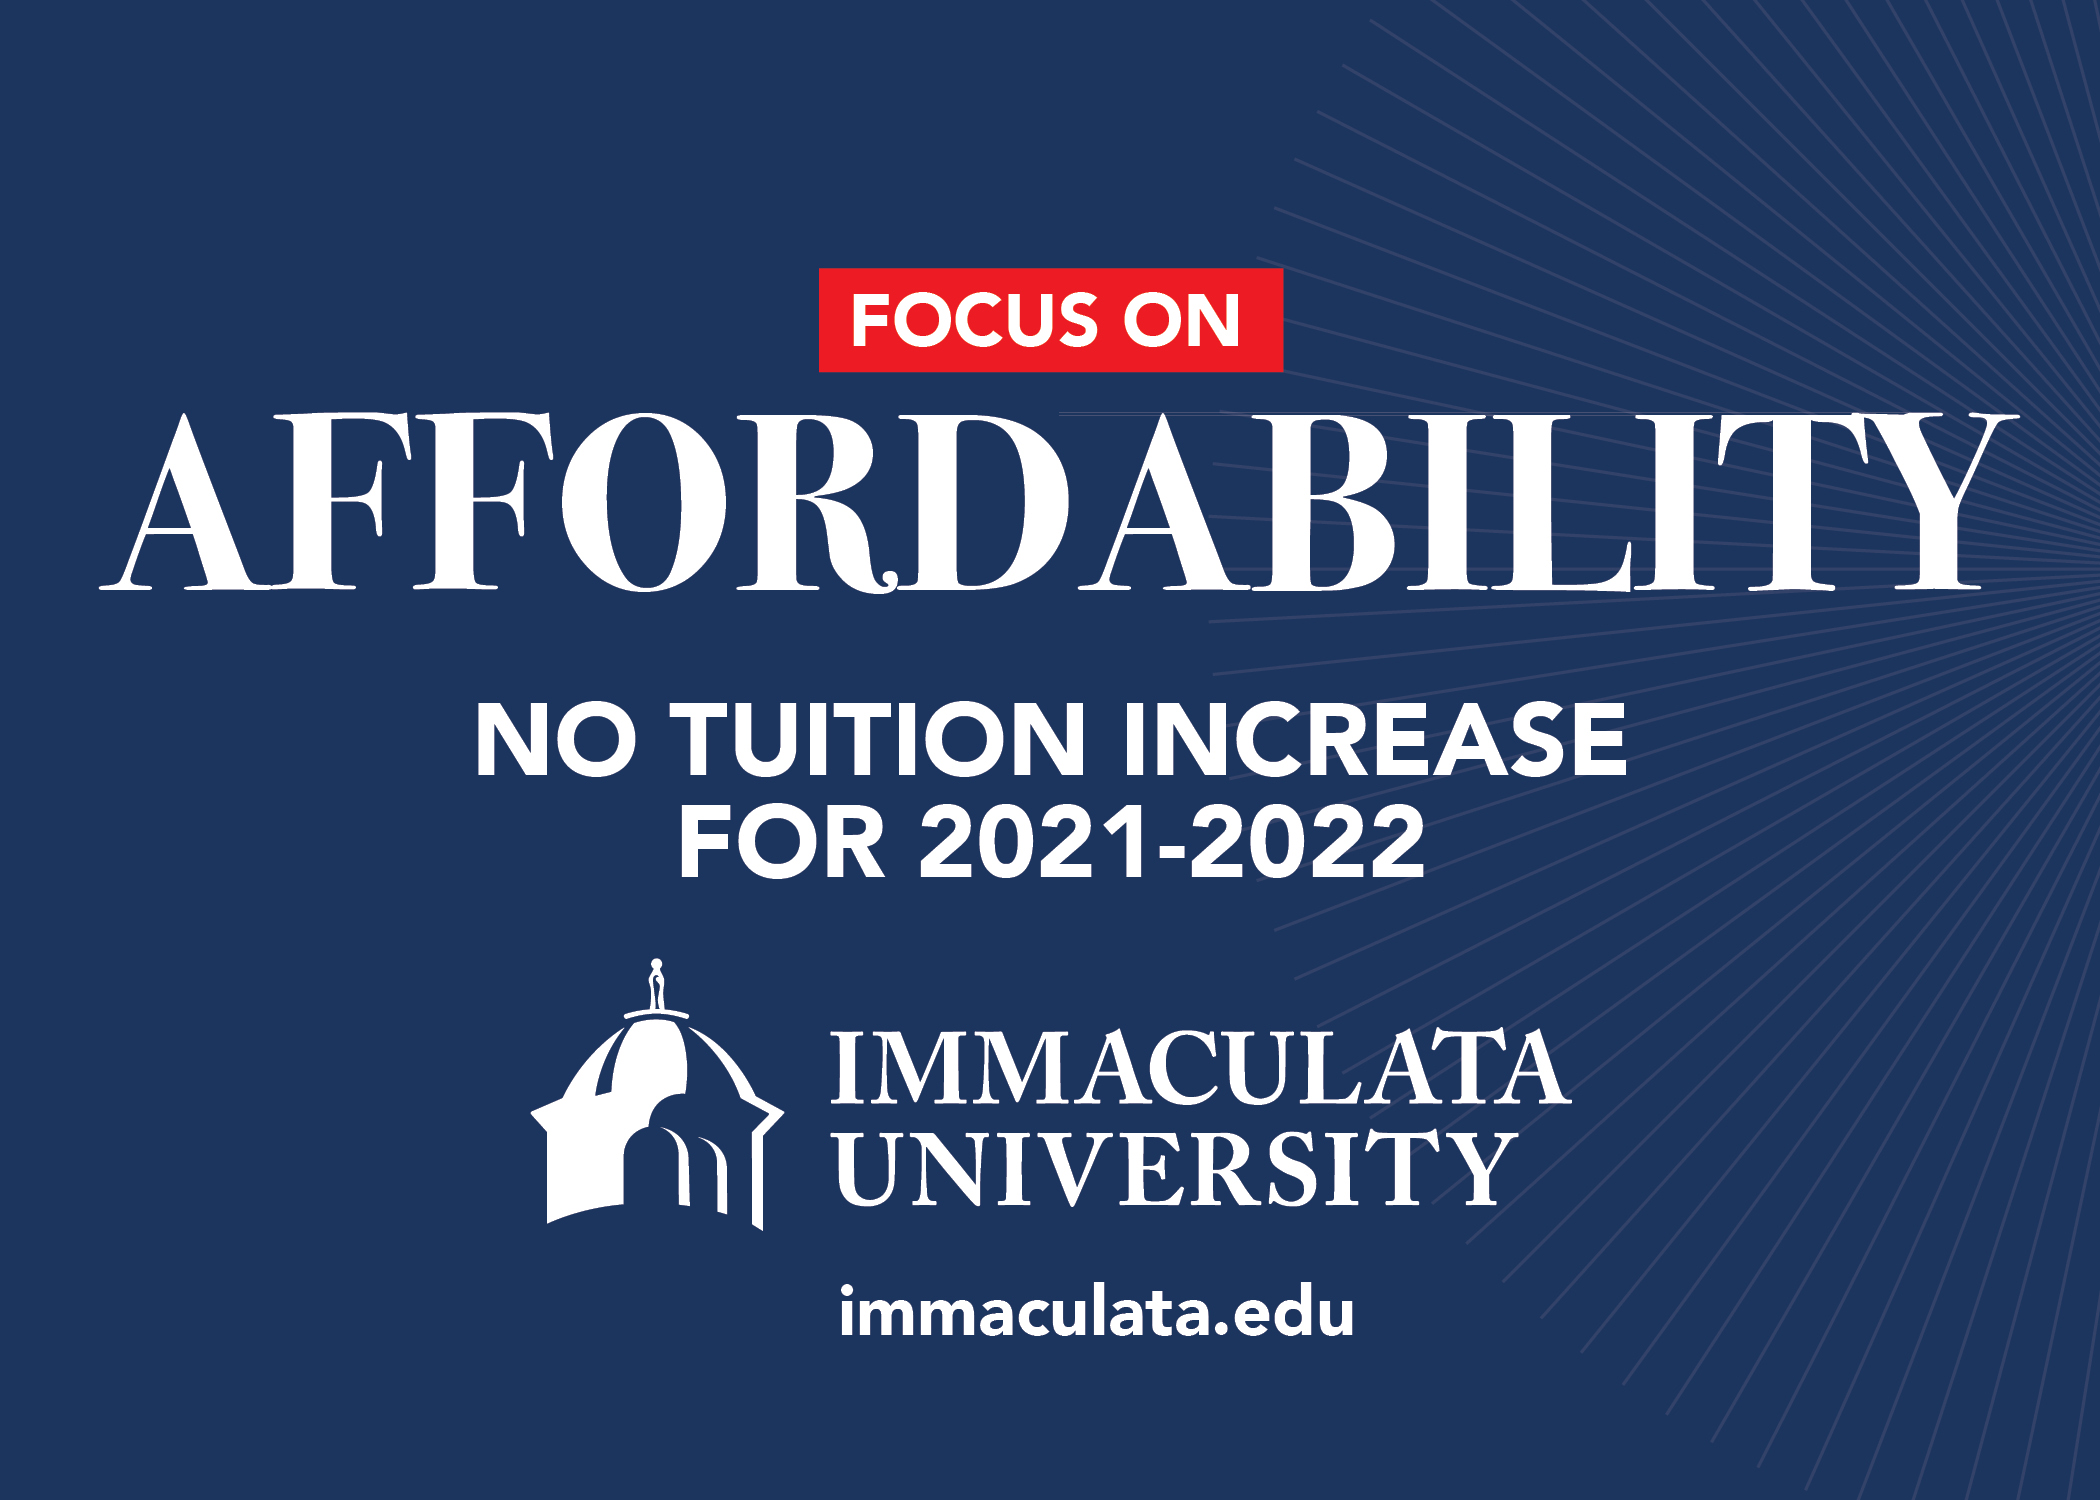 Immaculata University Freezes Tuition for 2021-2022 Academic Year